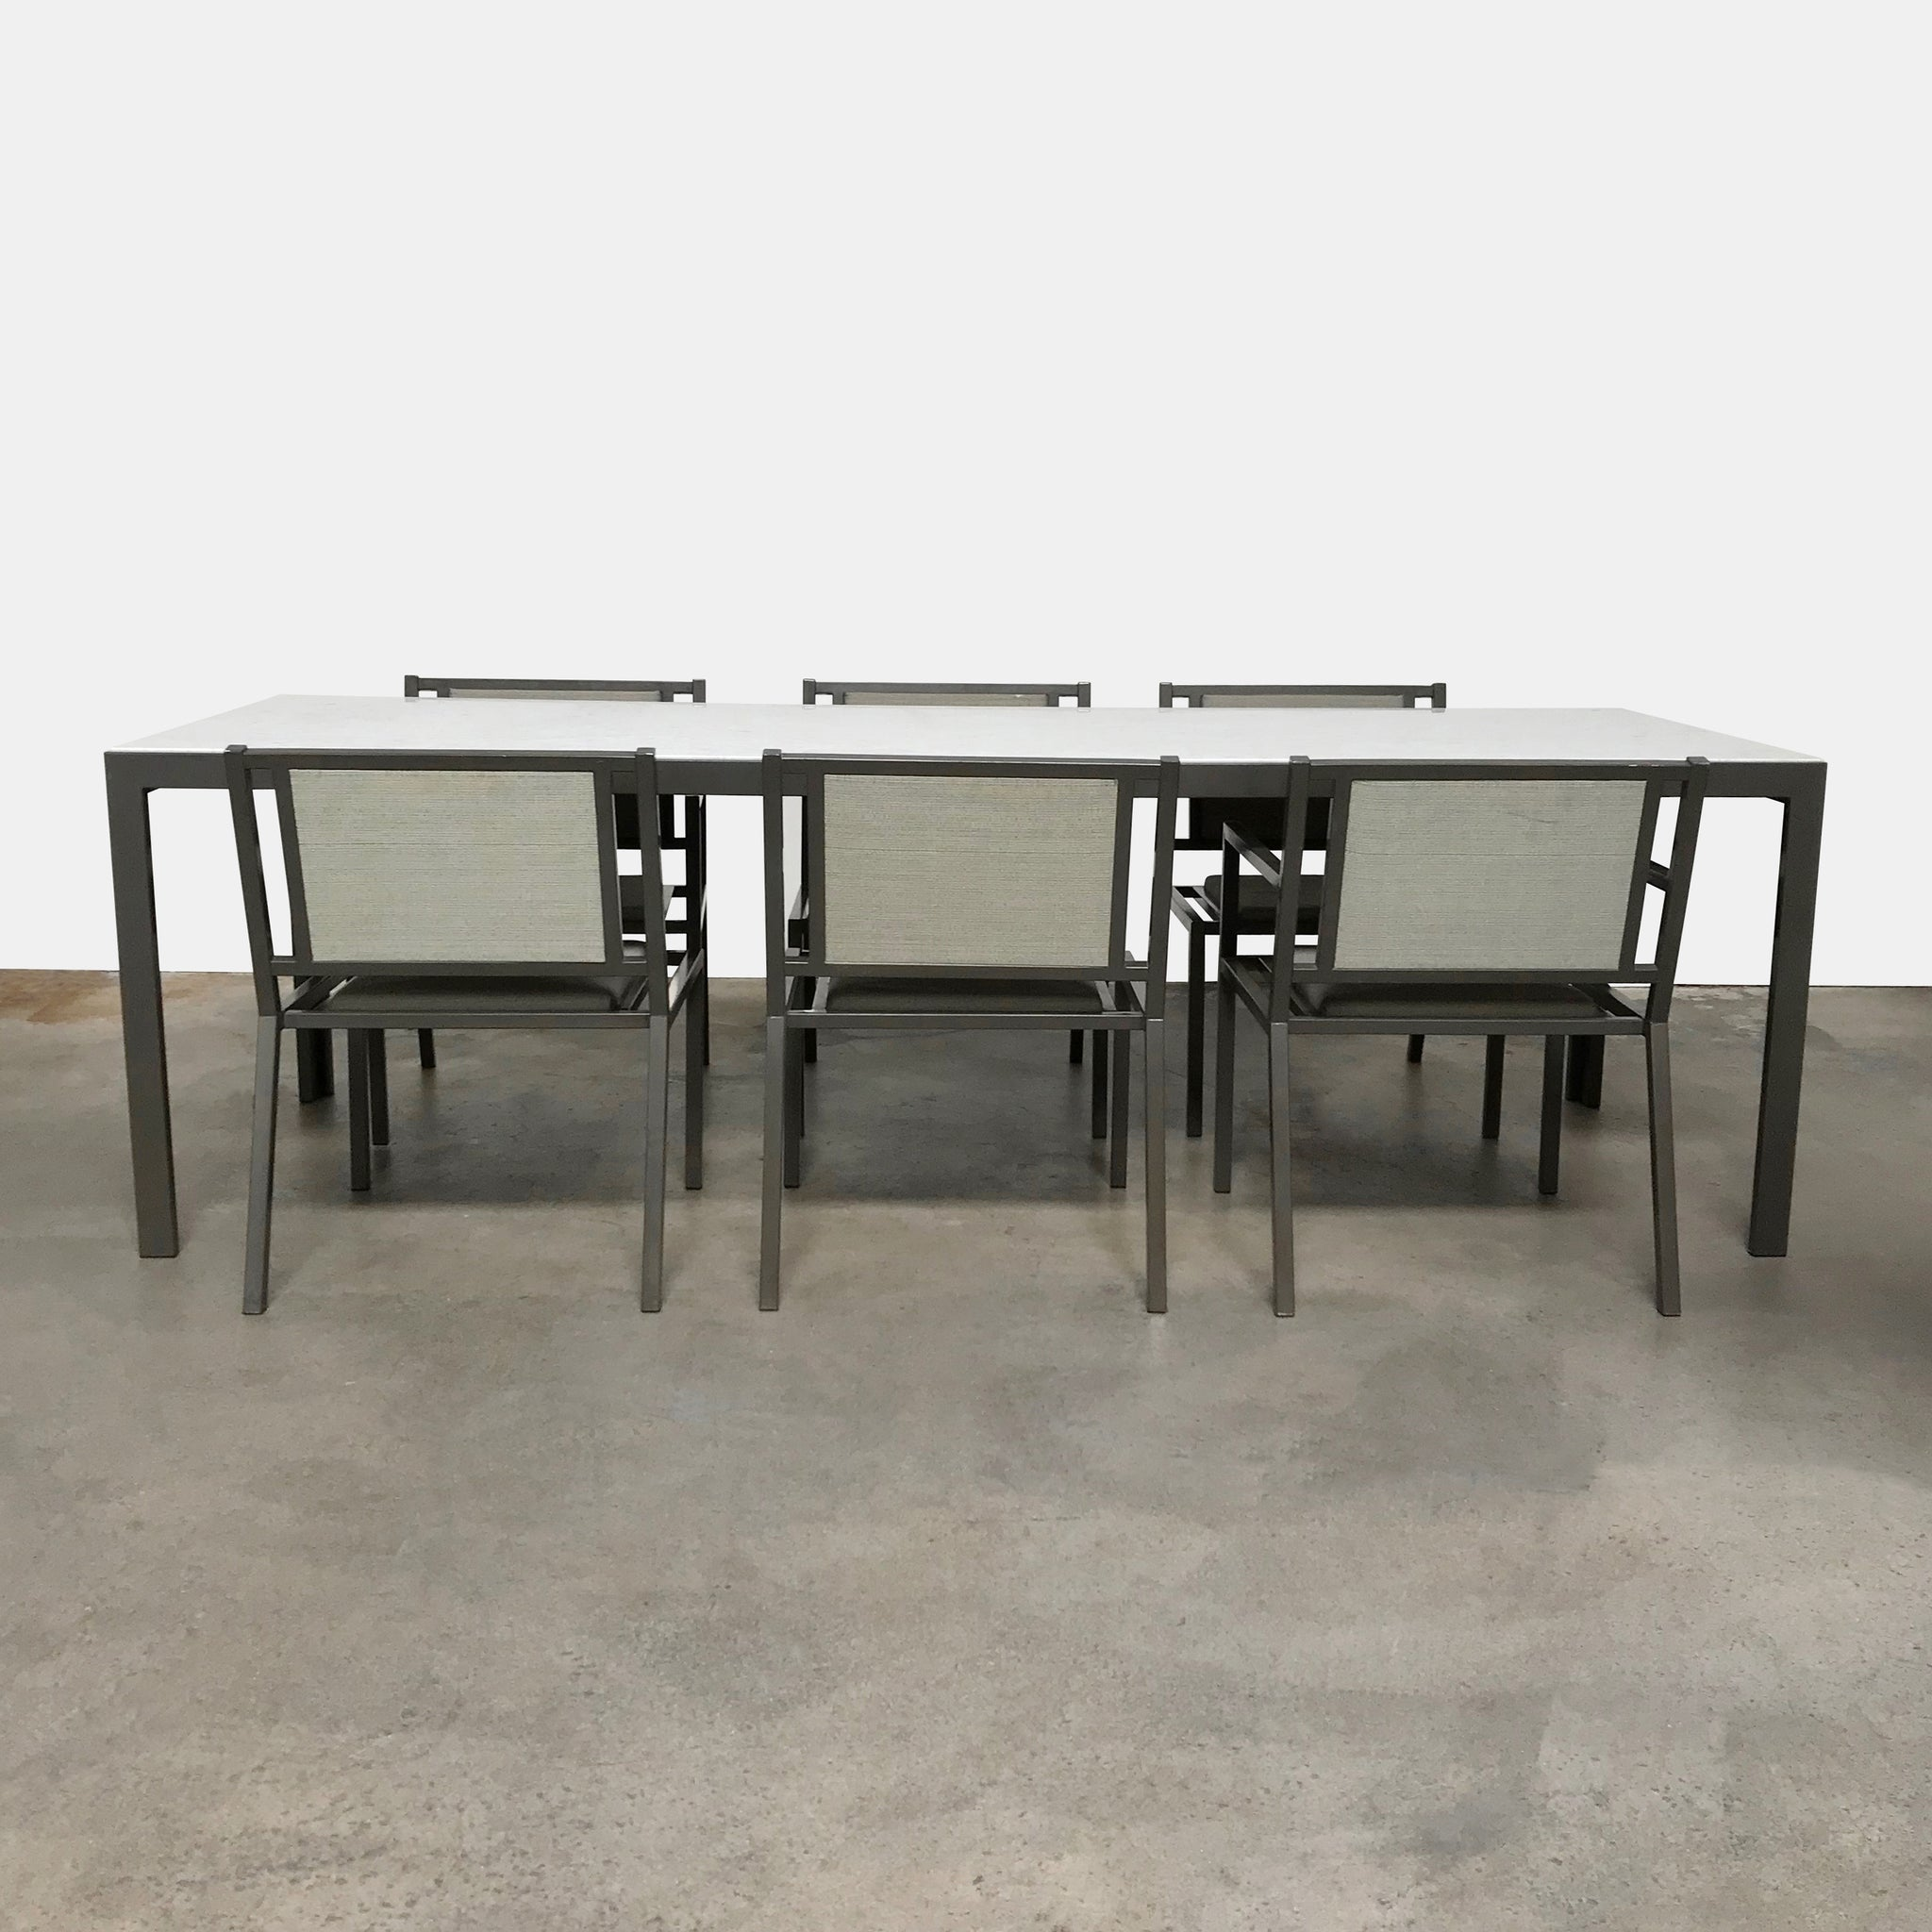 Case study outdoor dining table 7 chairs